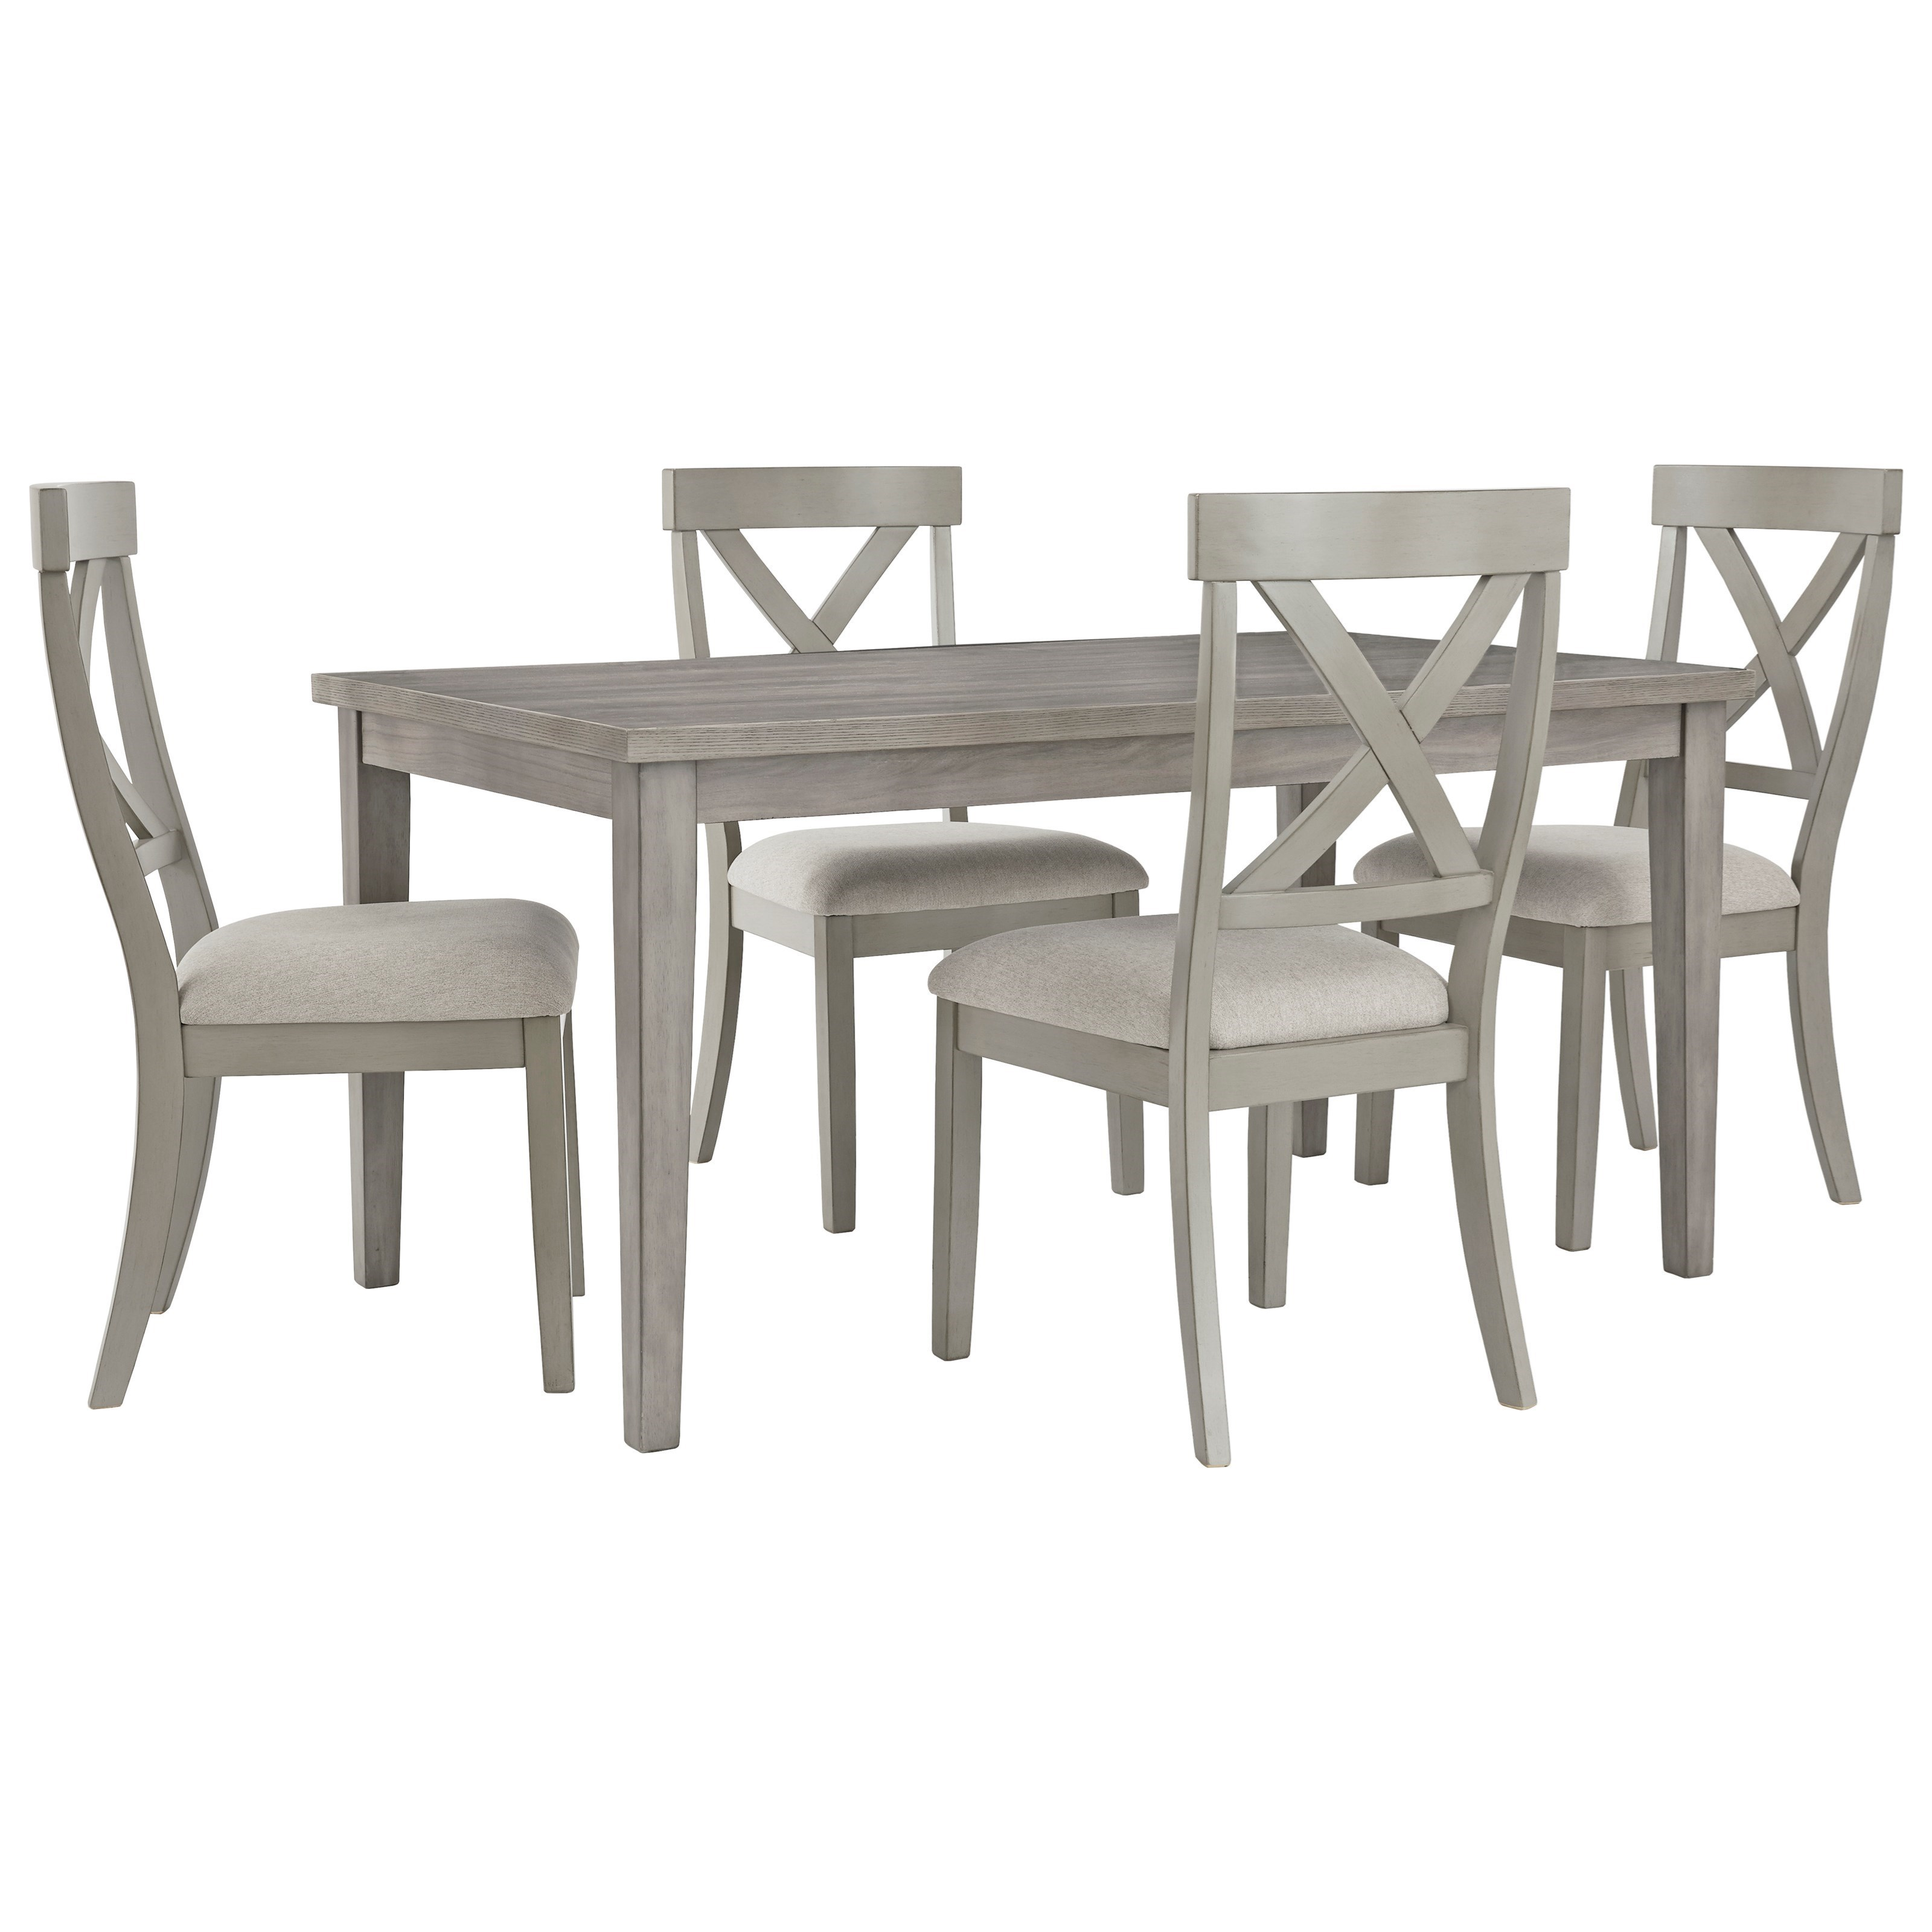 Parellen 5-Piece Table and Chair Set by Signature Design by Ashley at Zak's Warehouse Clearance Center